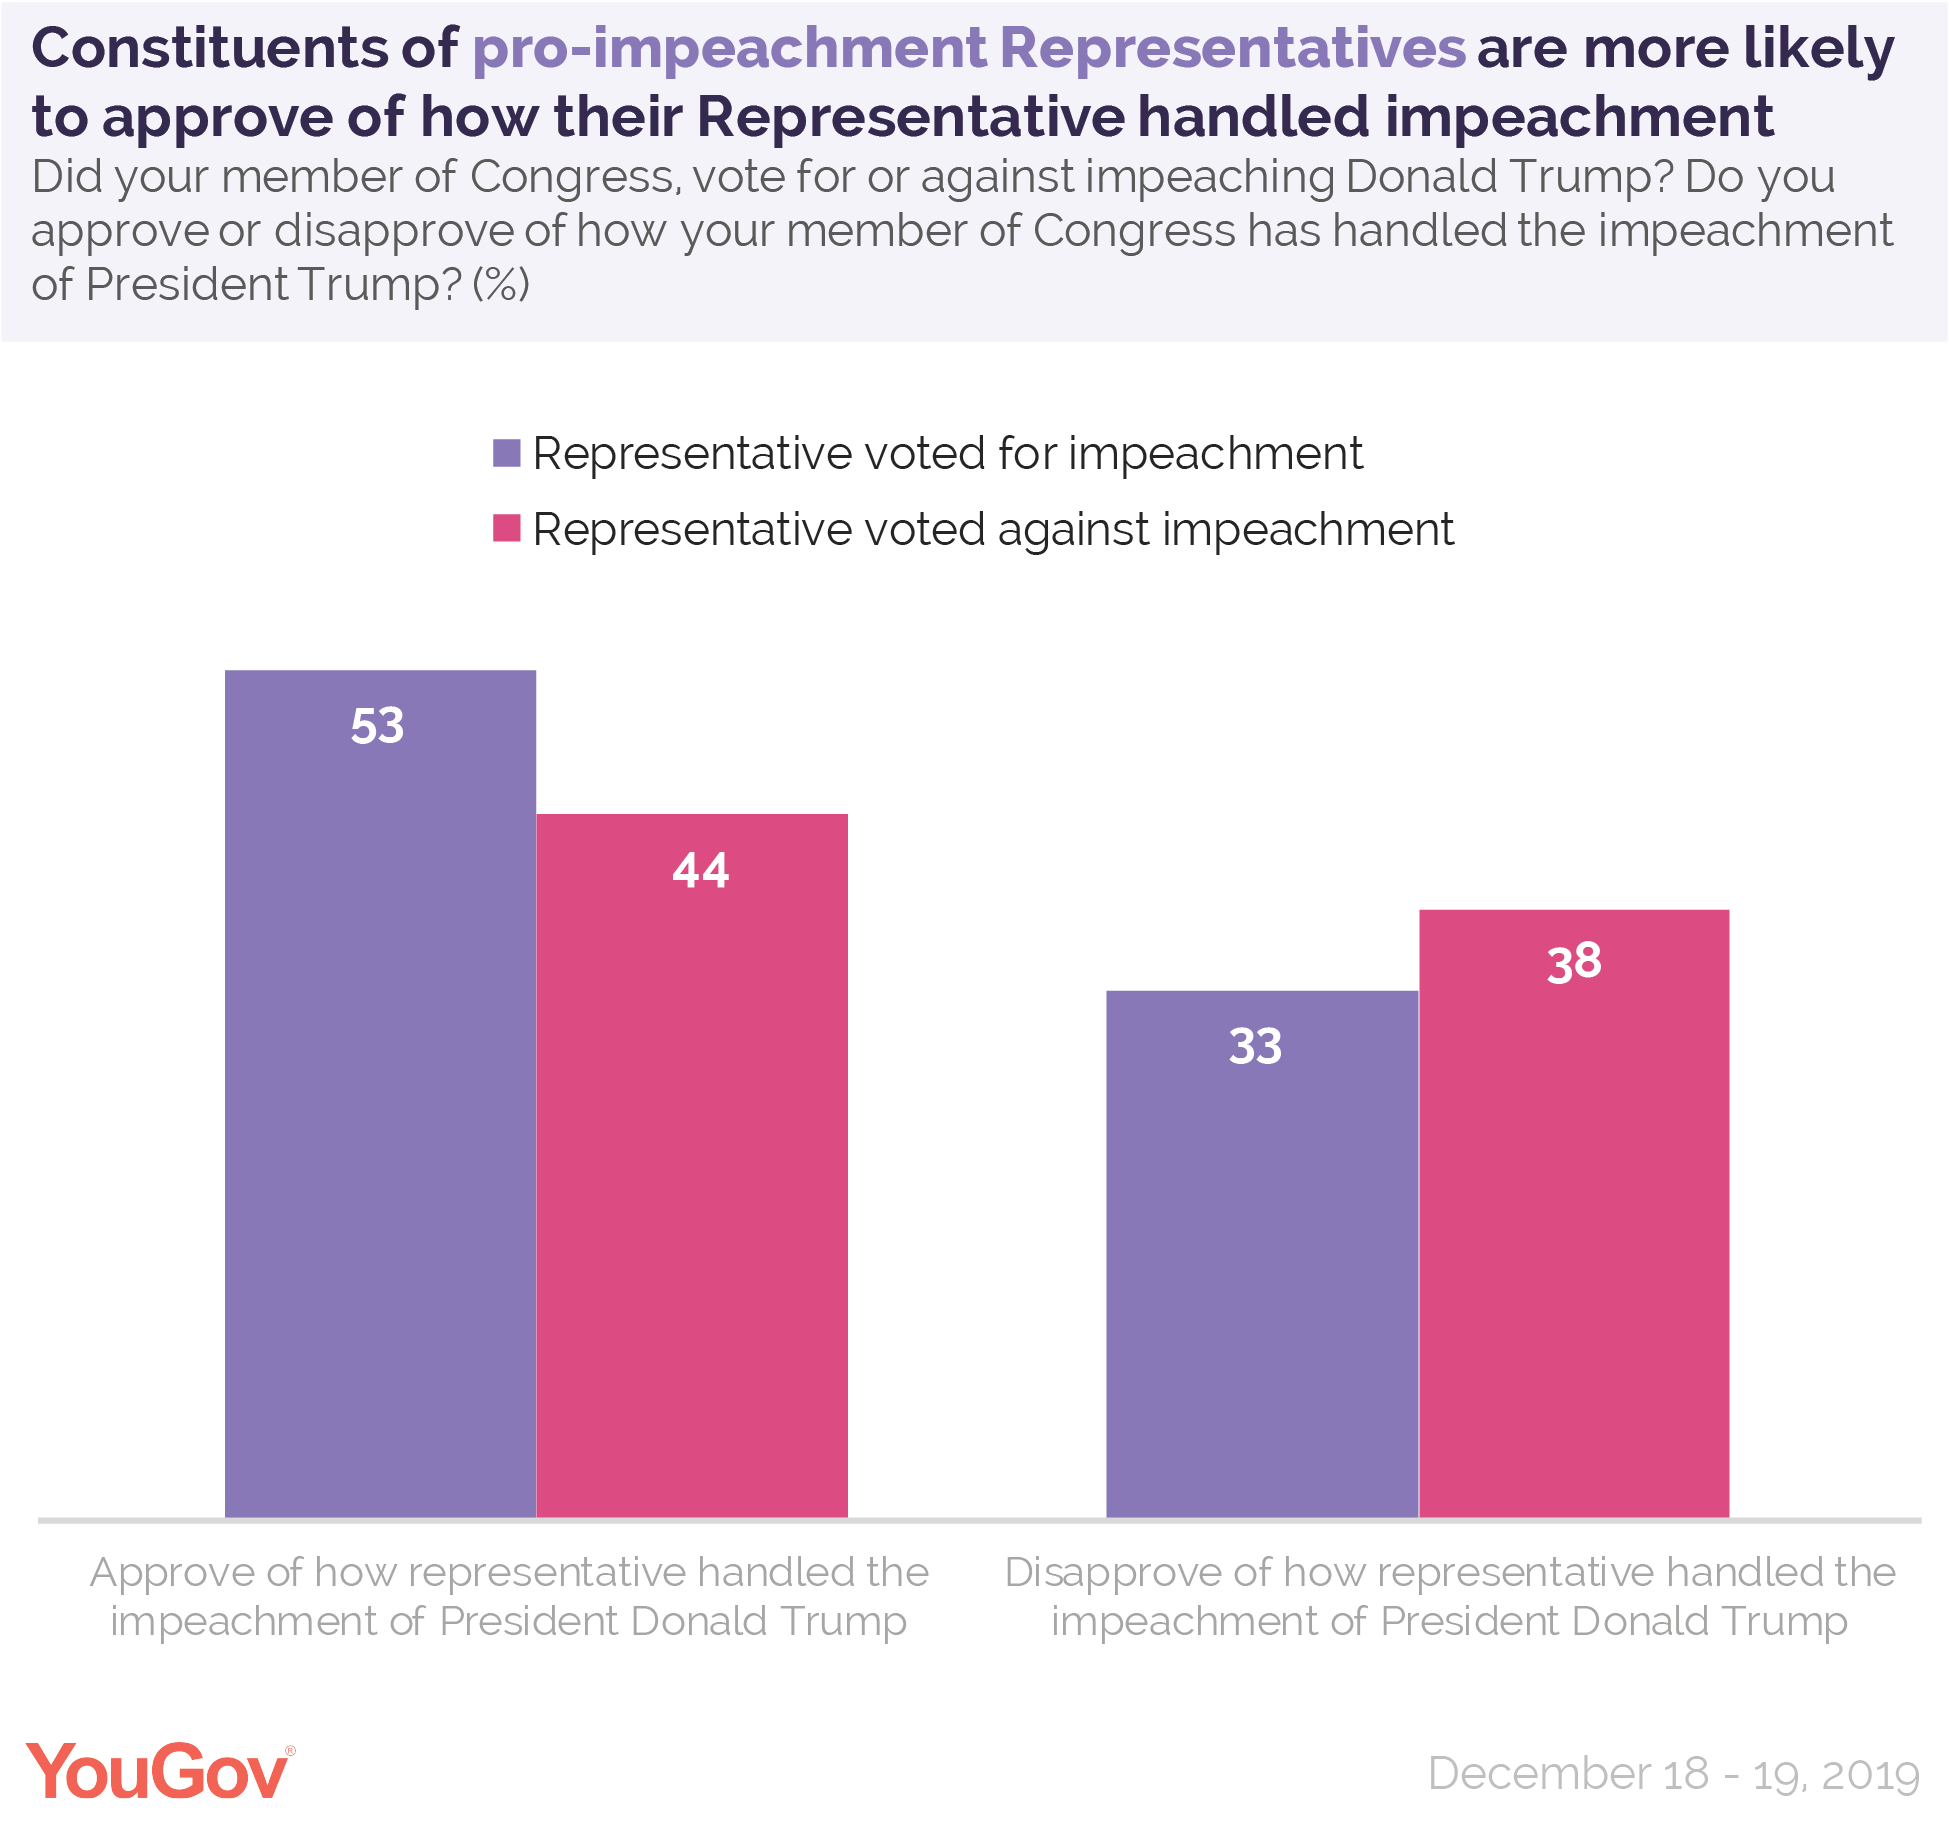 Constituents of pro-impeachment Representatives are more likely to approve of how their Representative handled impeachment